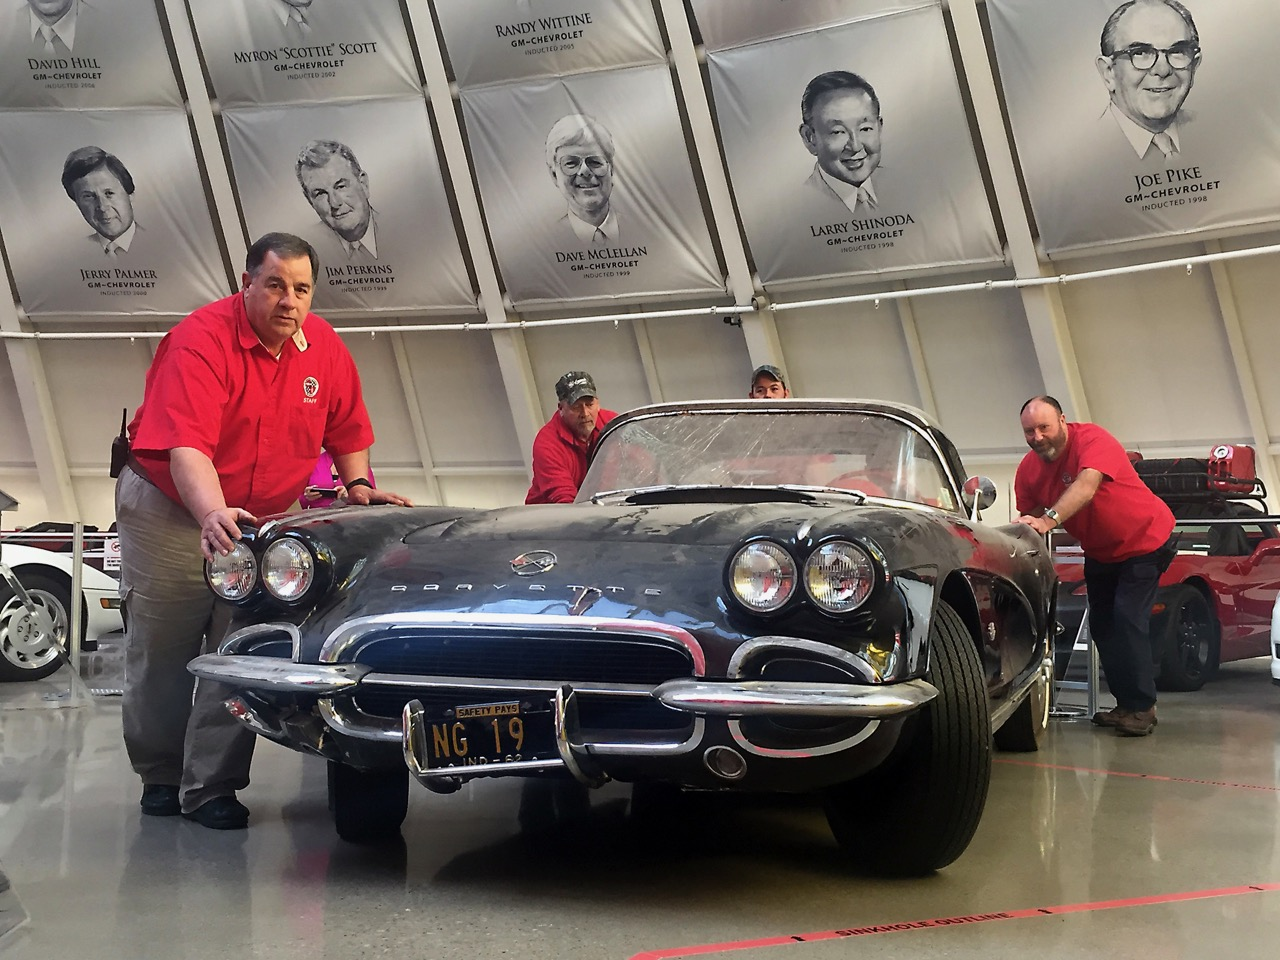 1962 Corvette is pushed from the Skydome to the garage where it will undergo restoration | Corvette museum photos